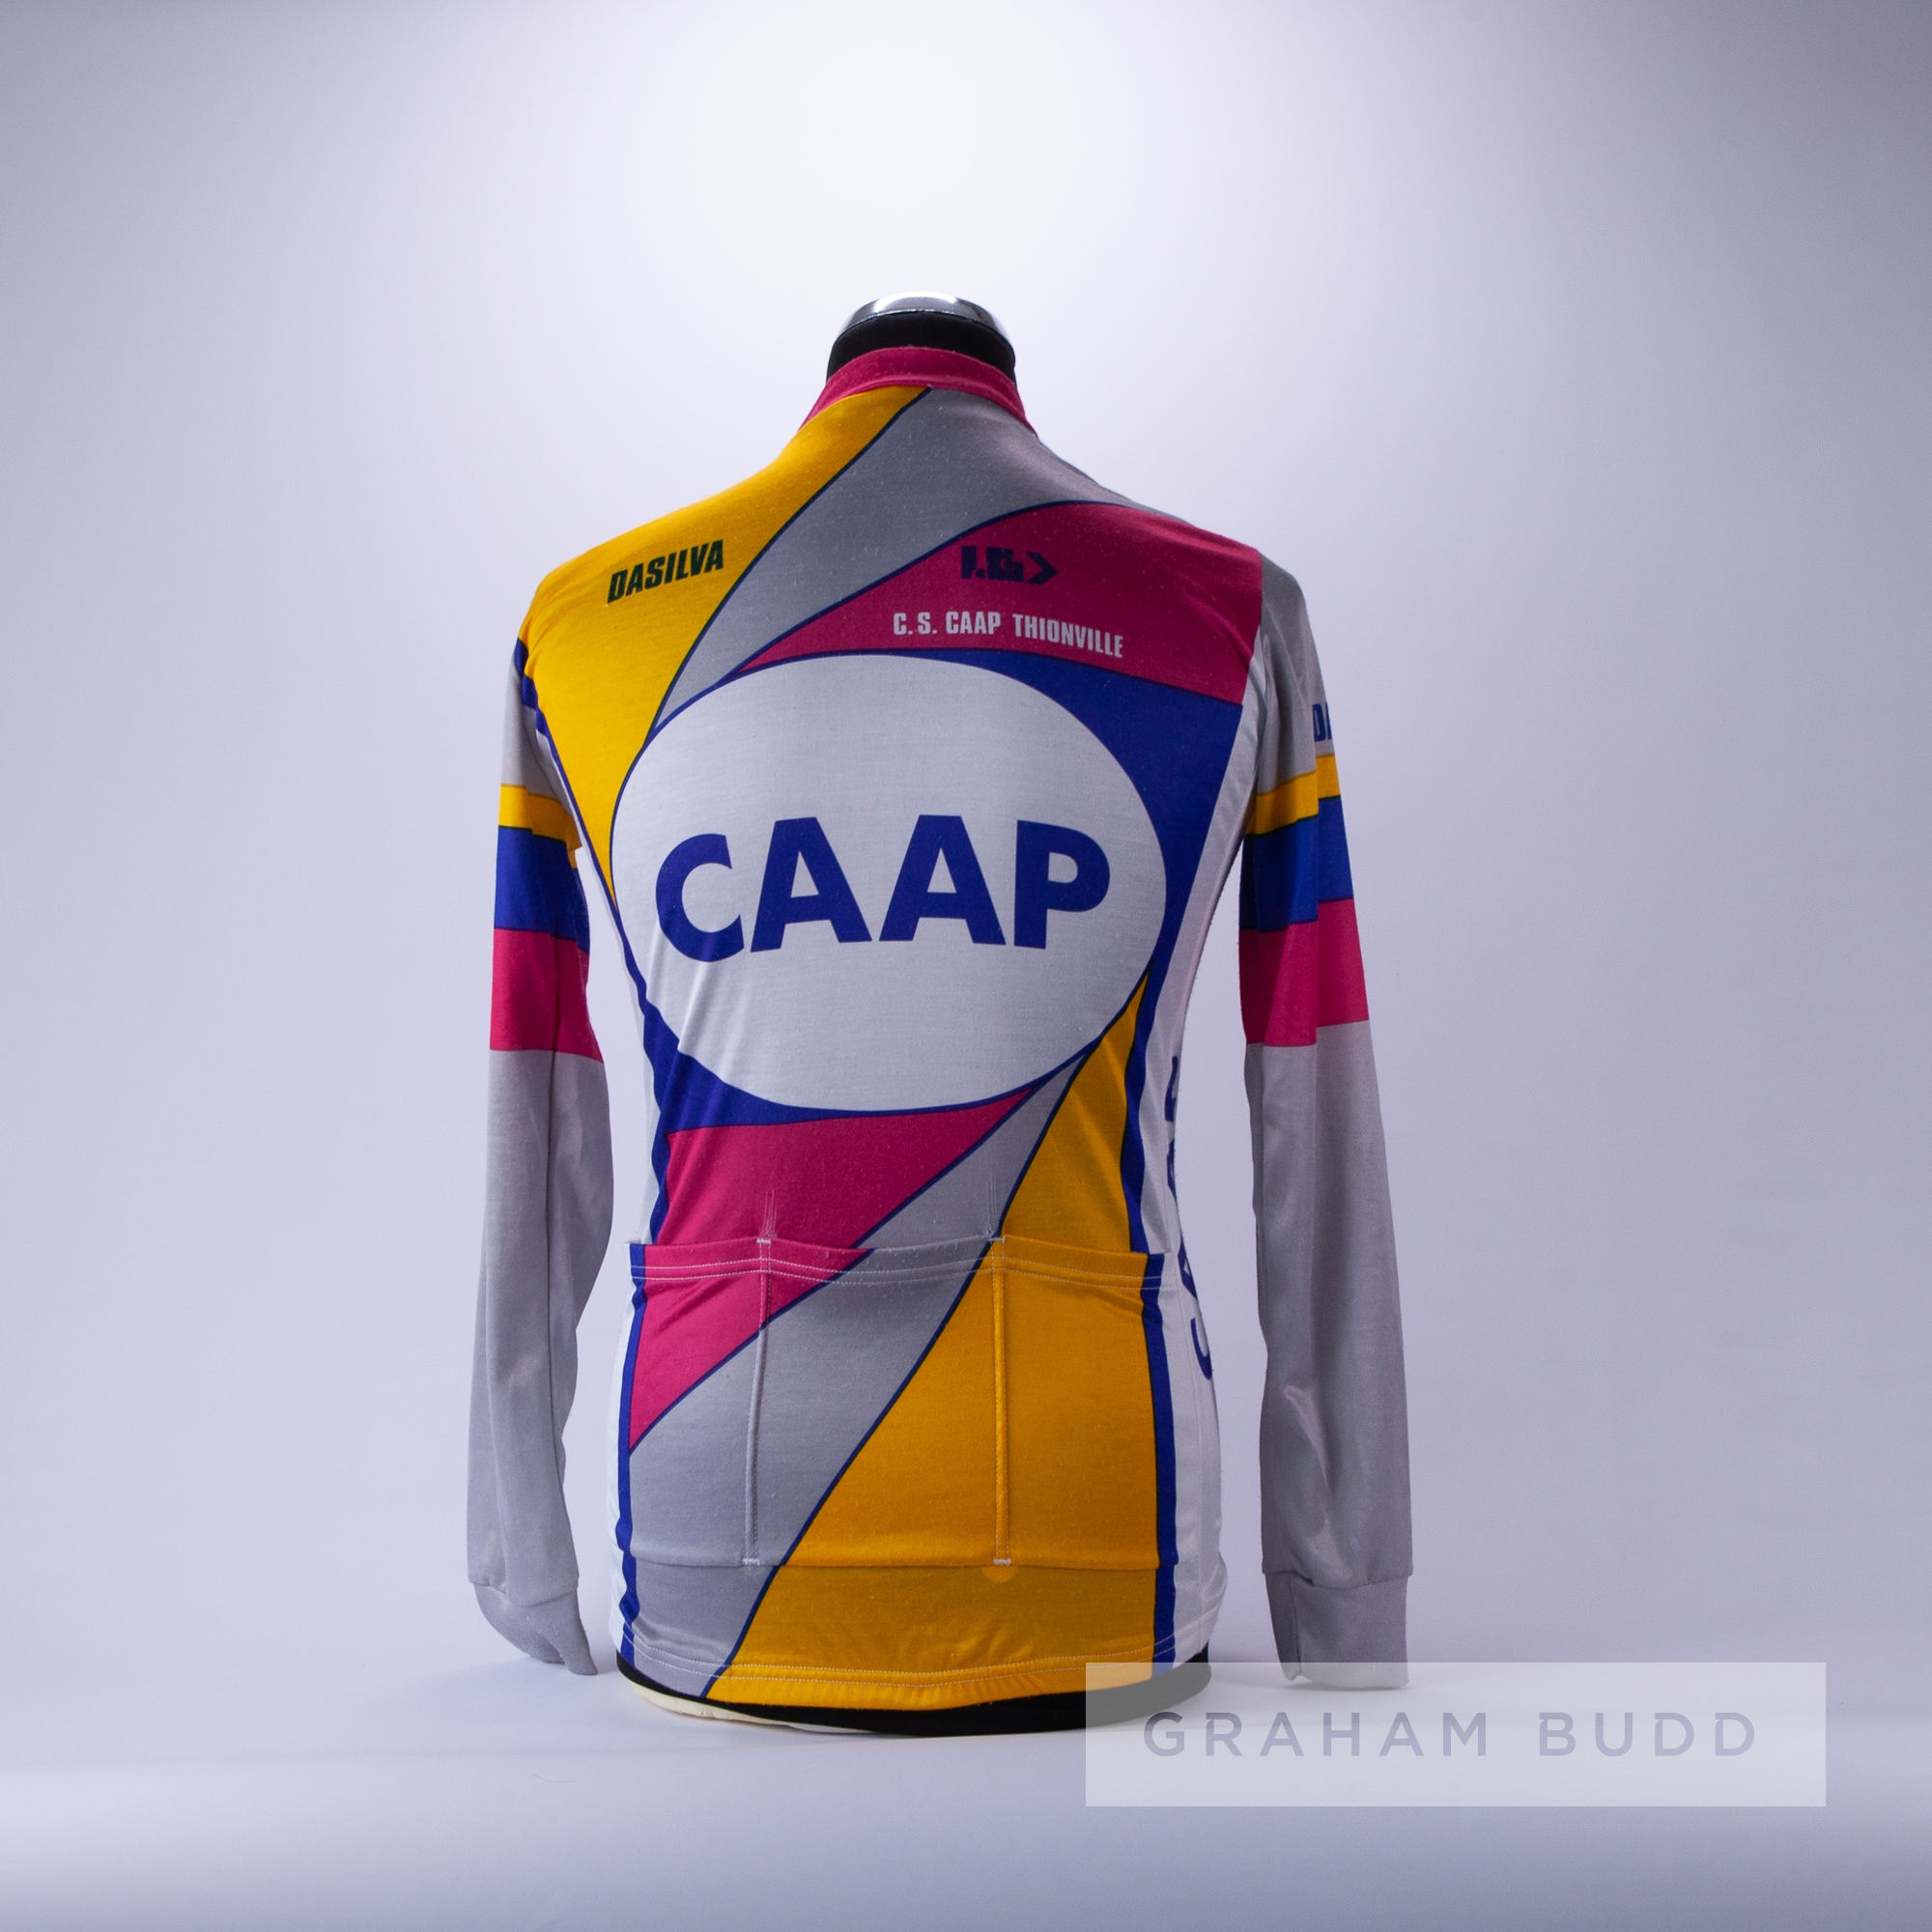 1980 pink, grey, yellow and blue Canadian CAAP Cycling race jersey, scarce, polyester long-sleeved - Image 2 of 2